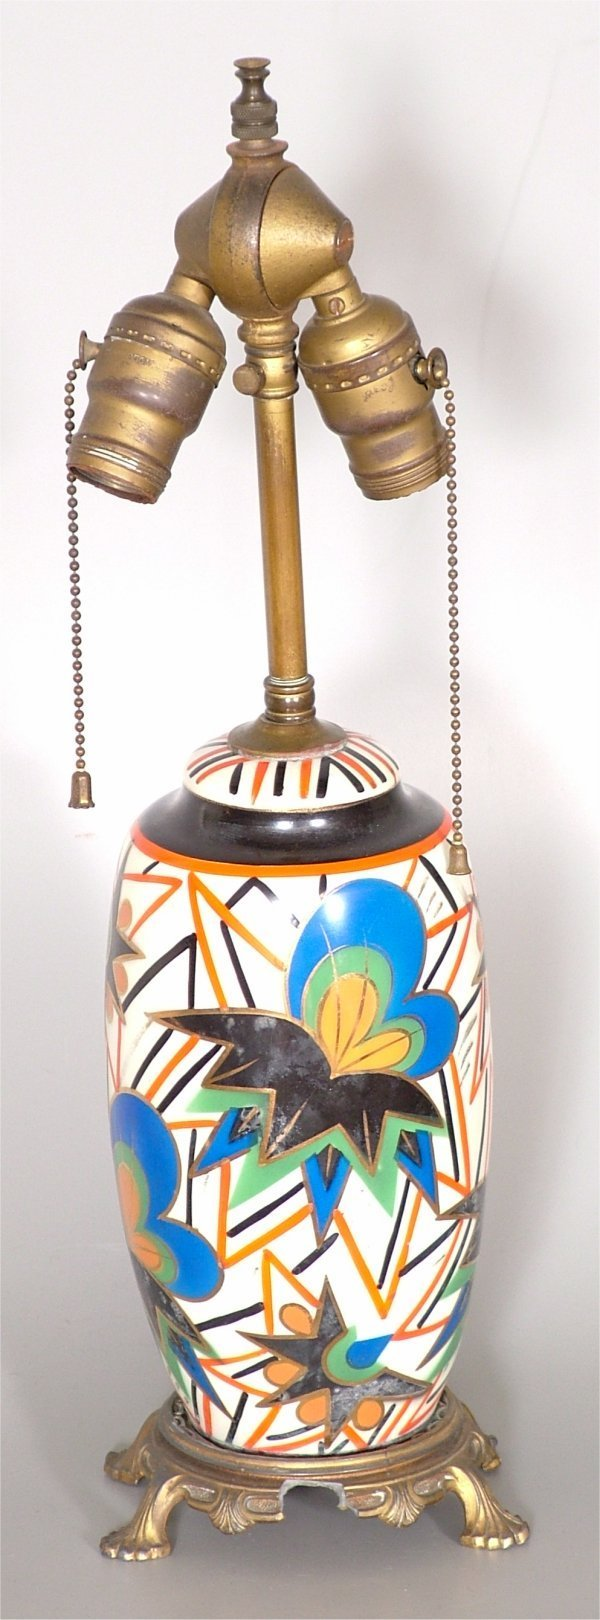 15002: 1930'S DECORATED CHINA TABLE LAMP W/METAL BASE,